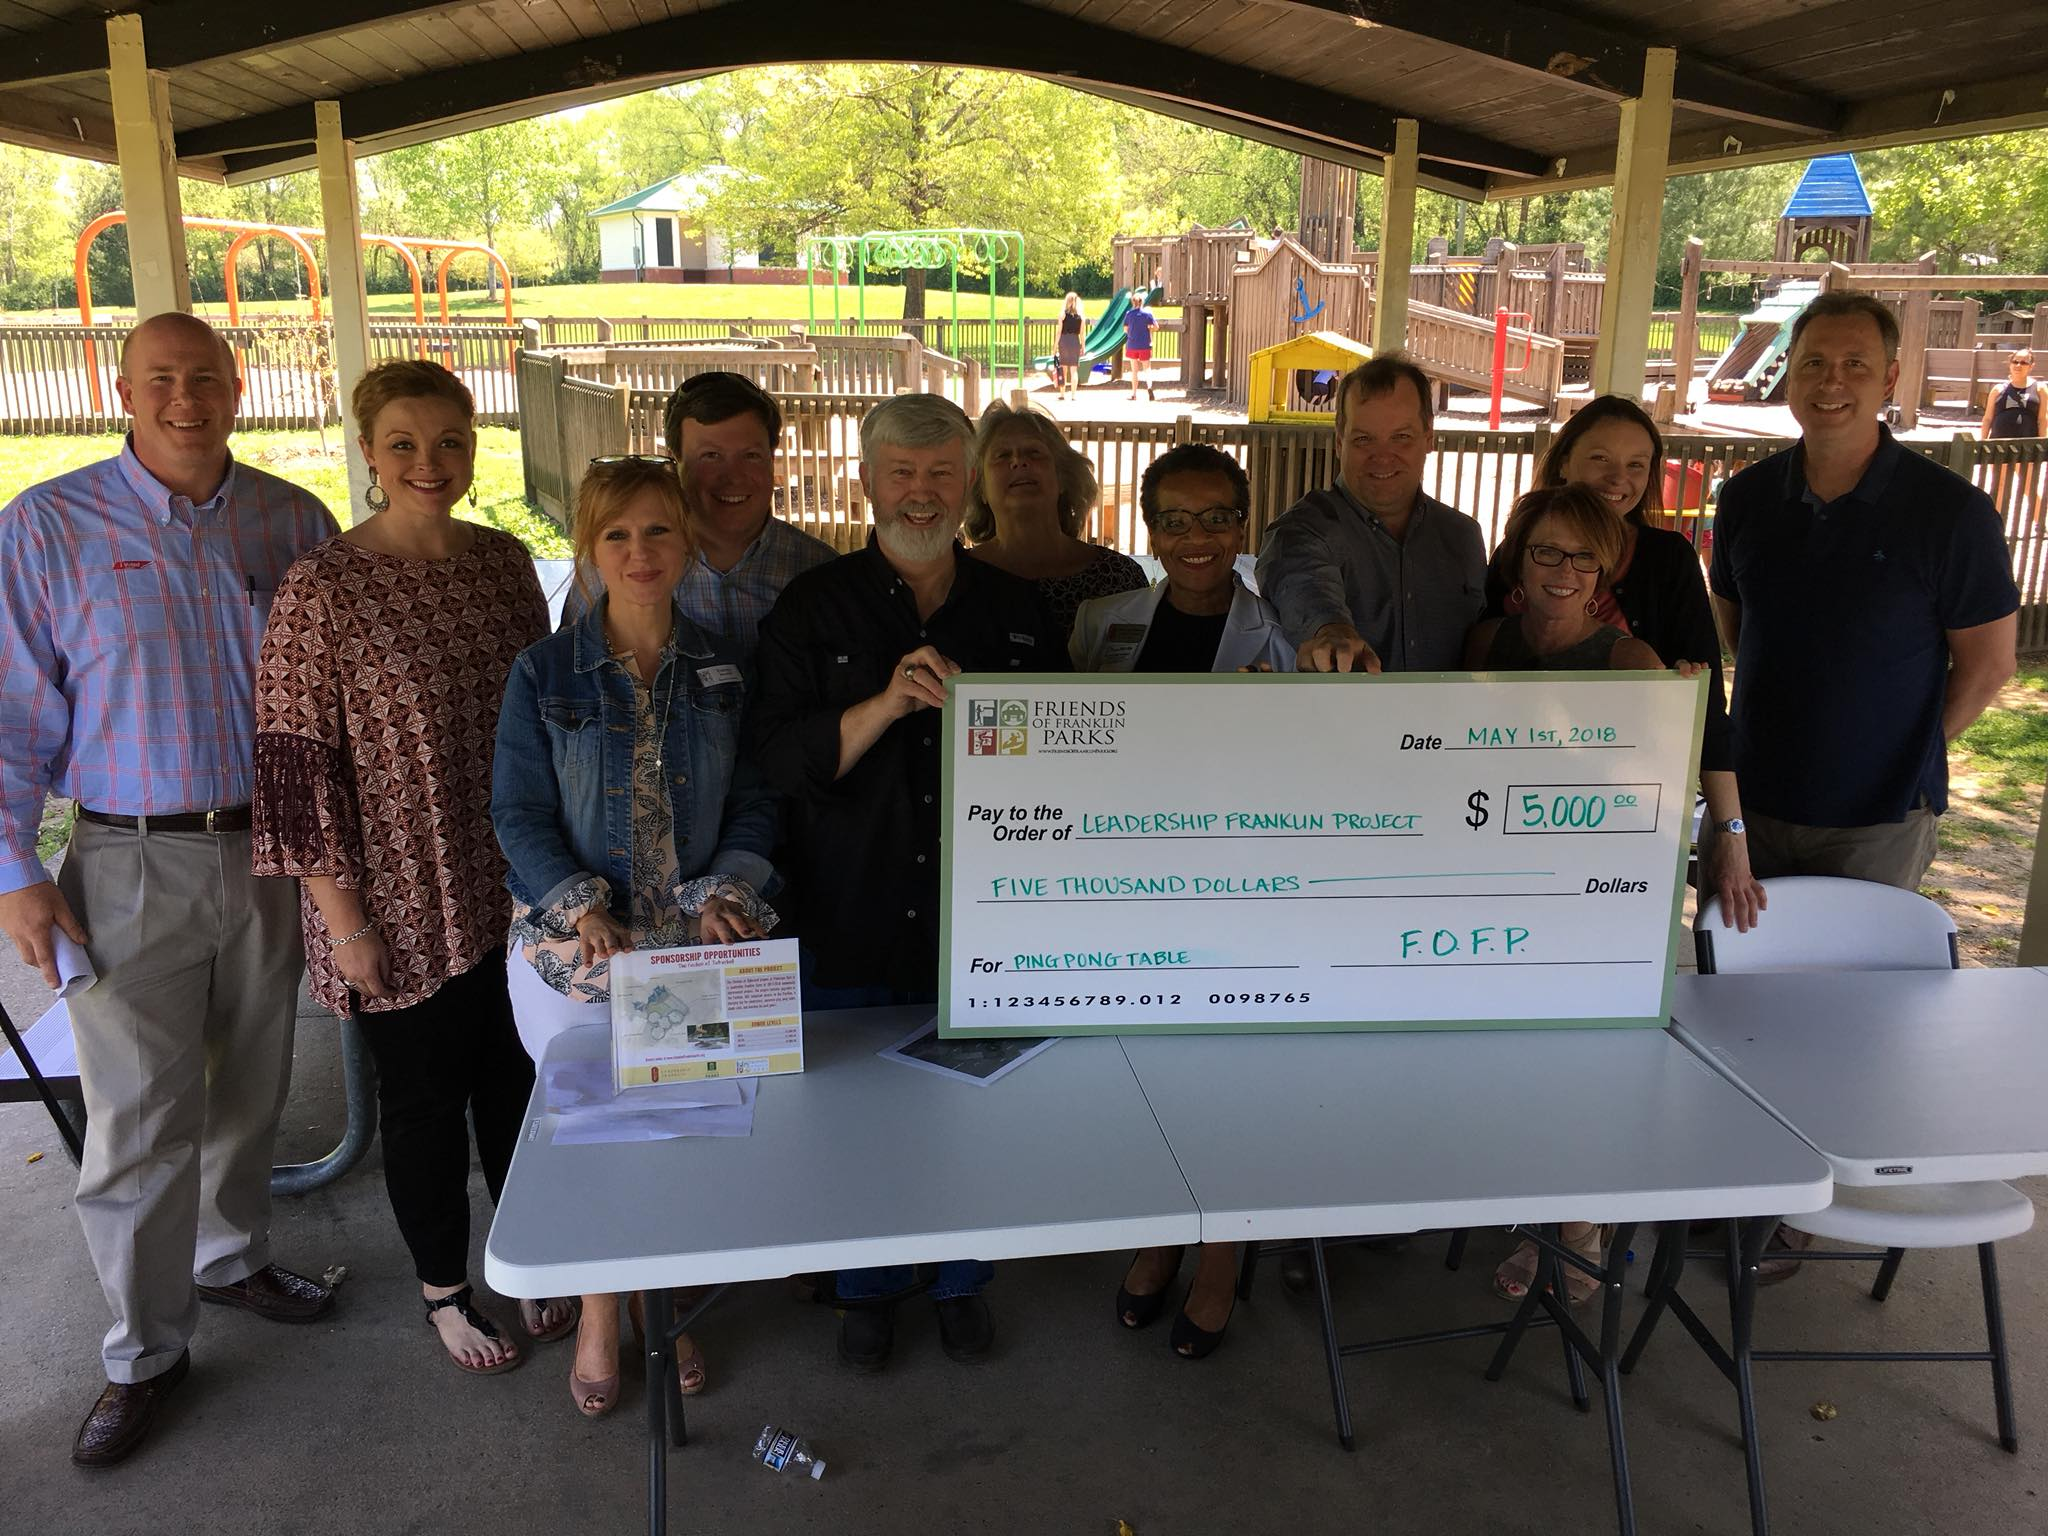 The Friends of Franklin Parks presents a check to the Leadership Franklin Project to fund an outdoor ping pong table for Pinkerton Park.